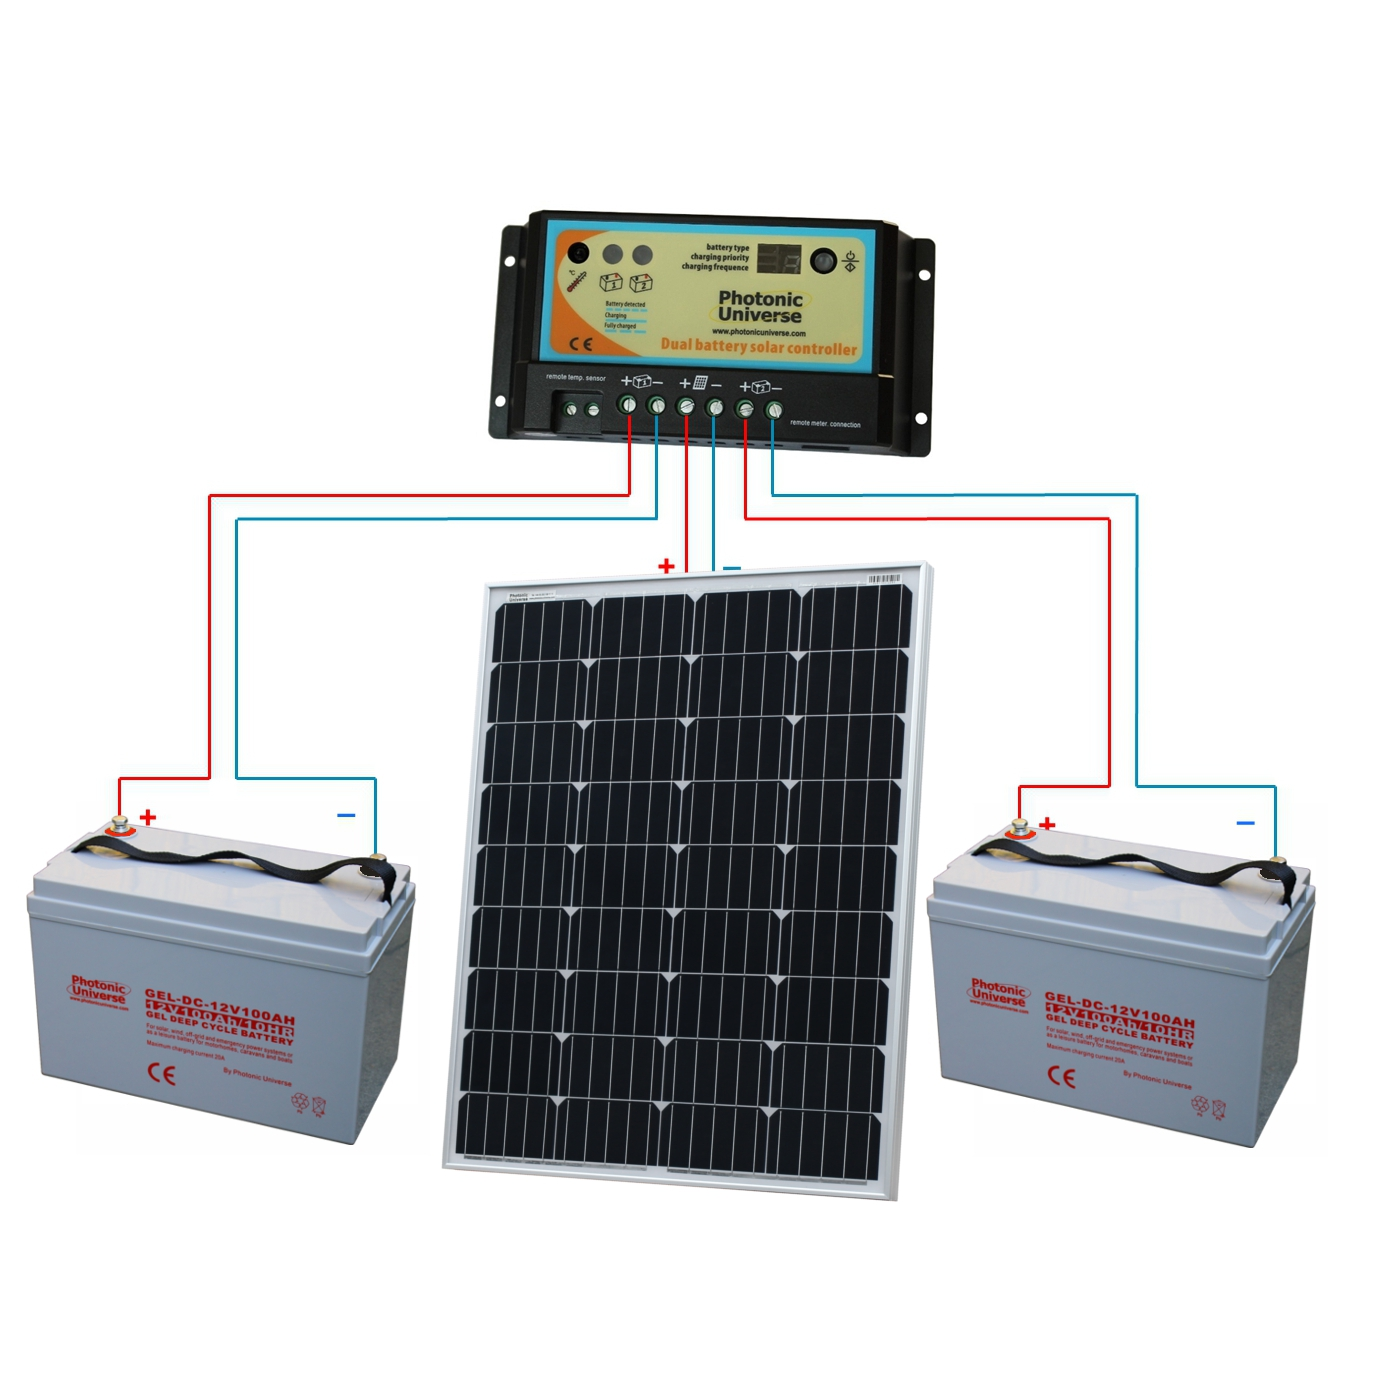 hight resolution of connection diagram for 100w 12v photonic universe dual battery solar charging kit